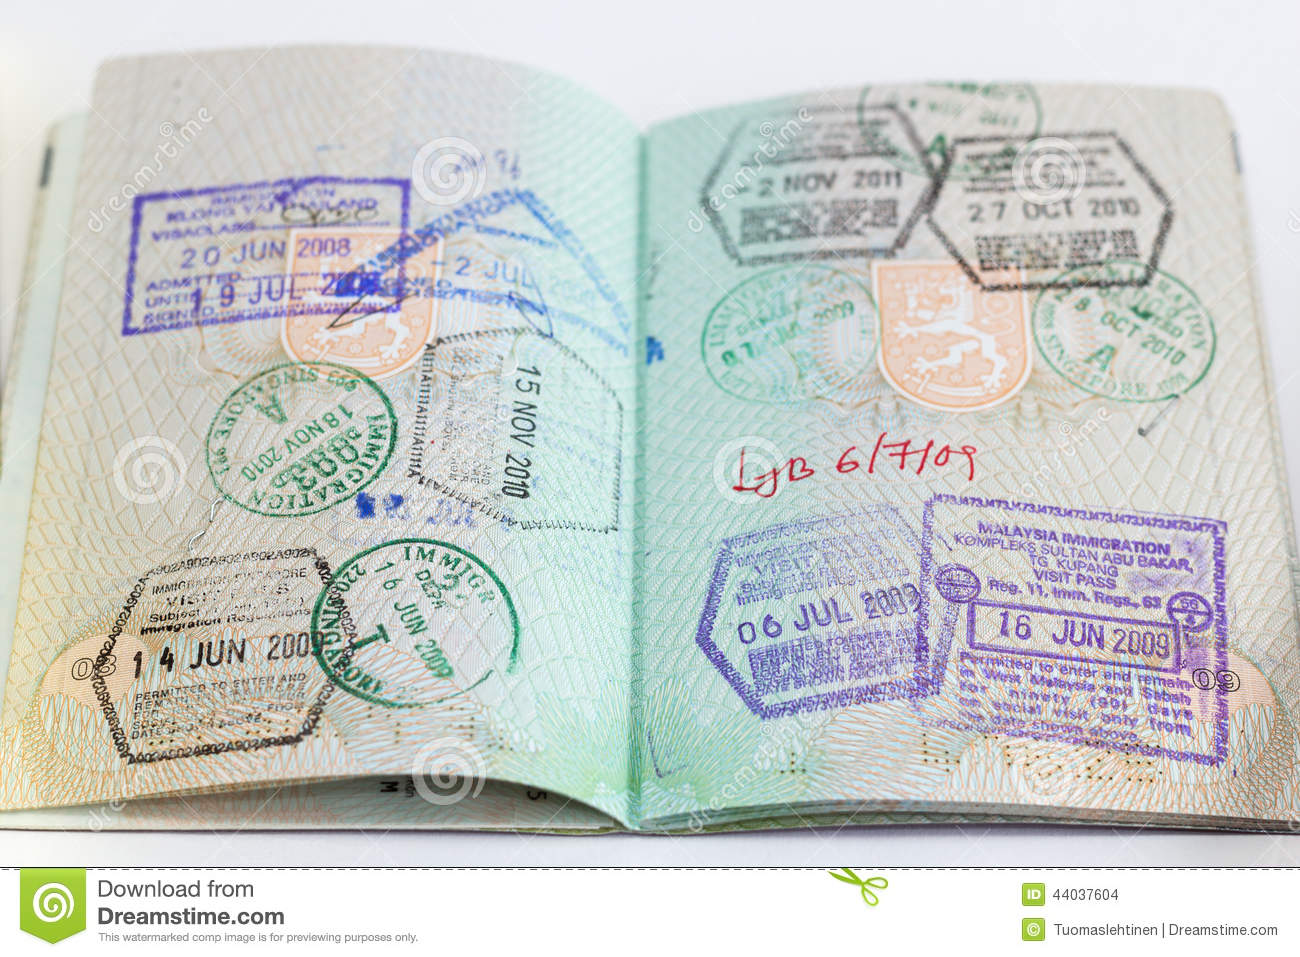 How to obtain a Russian Visa in an easy and costeffective